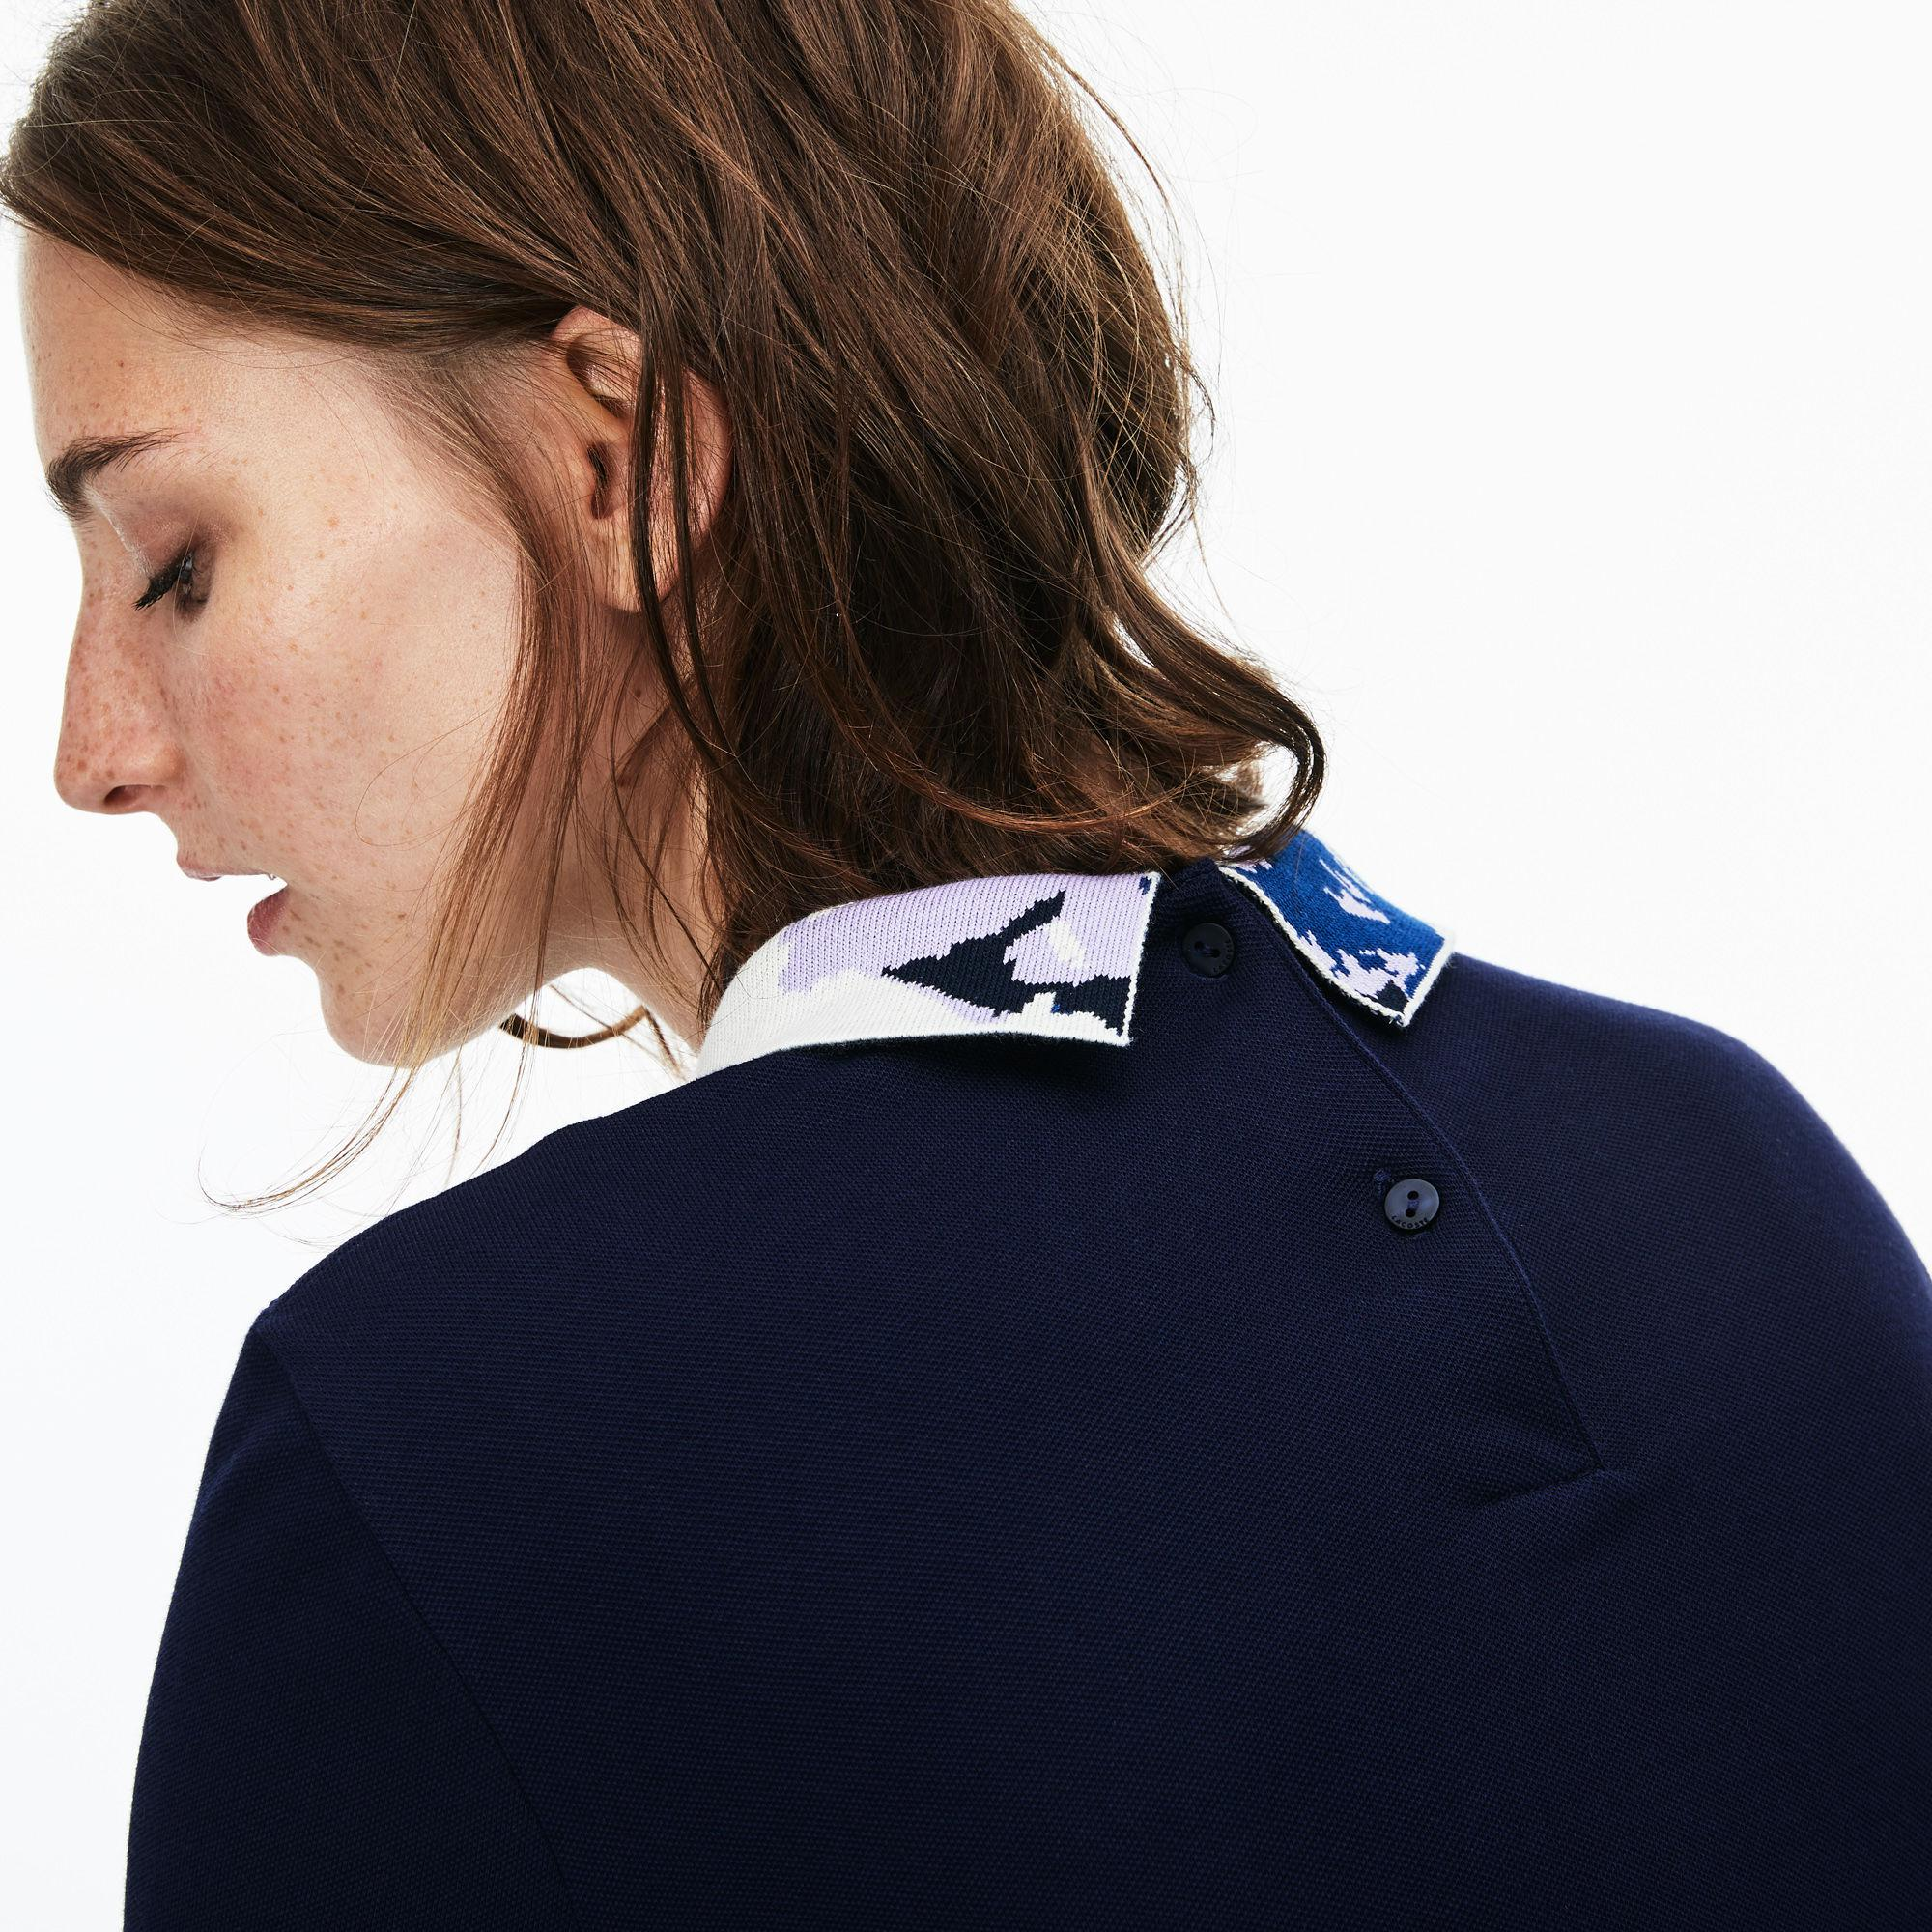 Blue Lyst Polo Jacquard Stretch Collar Piqué Lacoste In Mini Yby76vfg